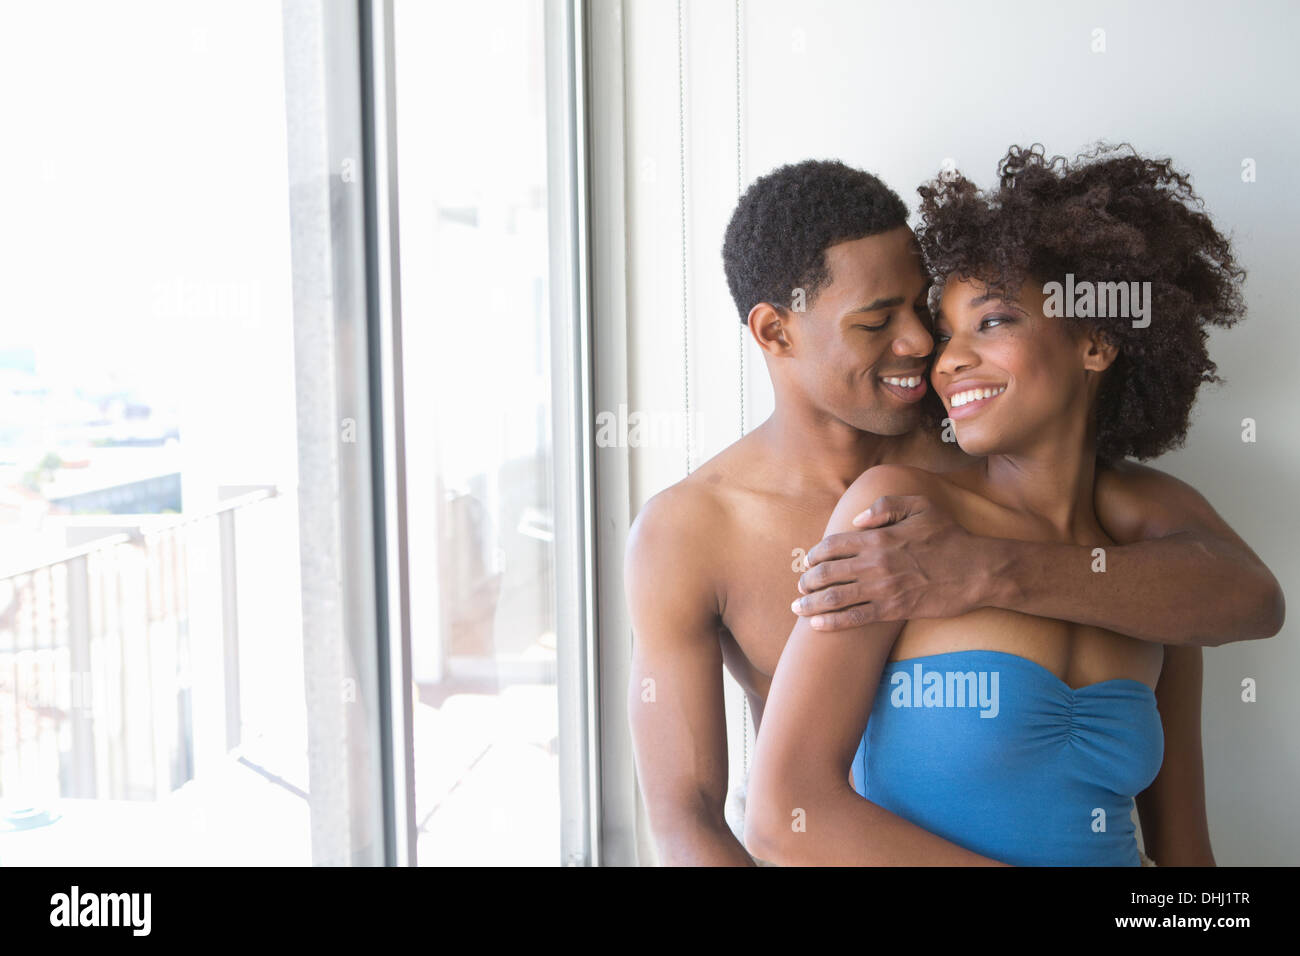 Portrait of young couple by window, man with arm around woman - Stock Image